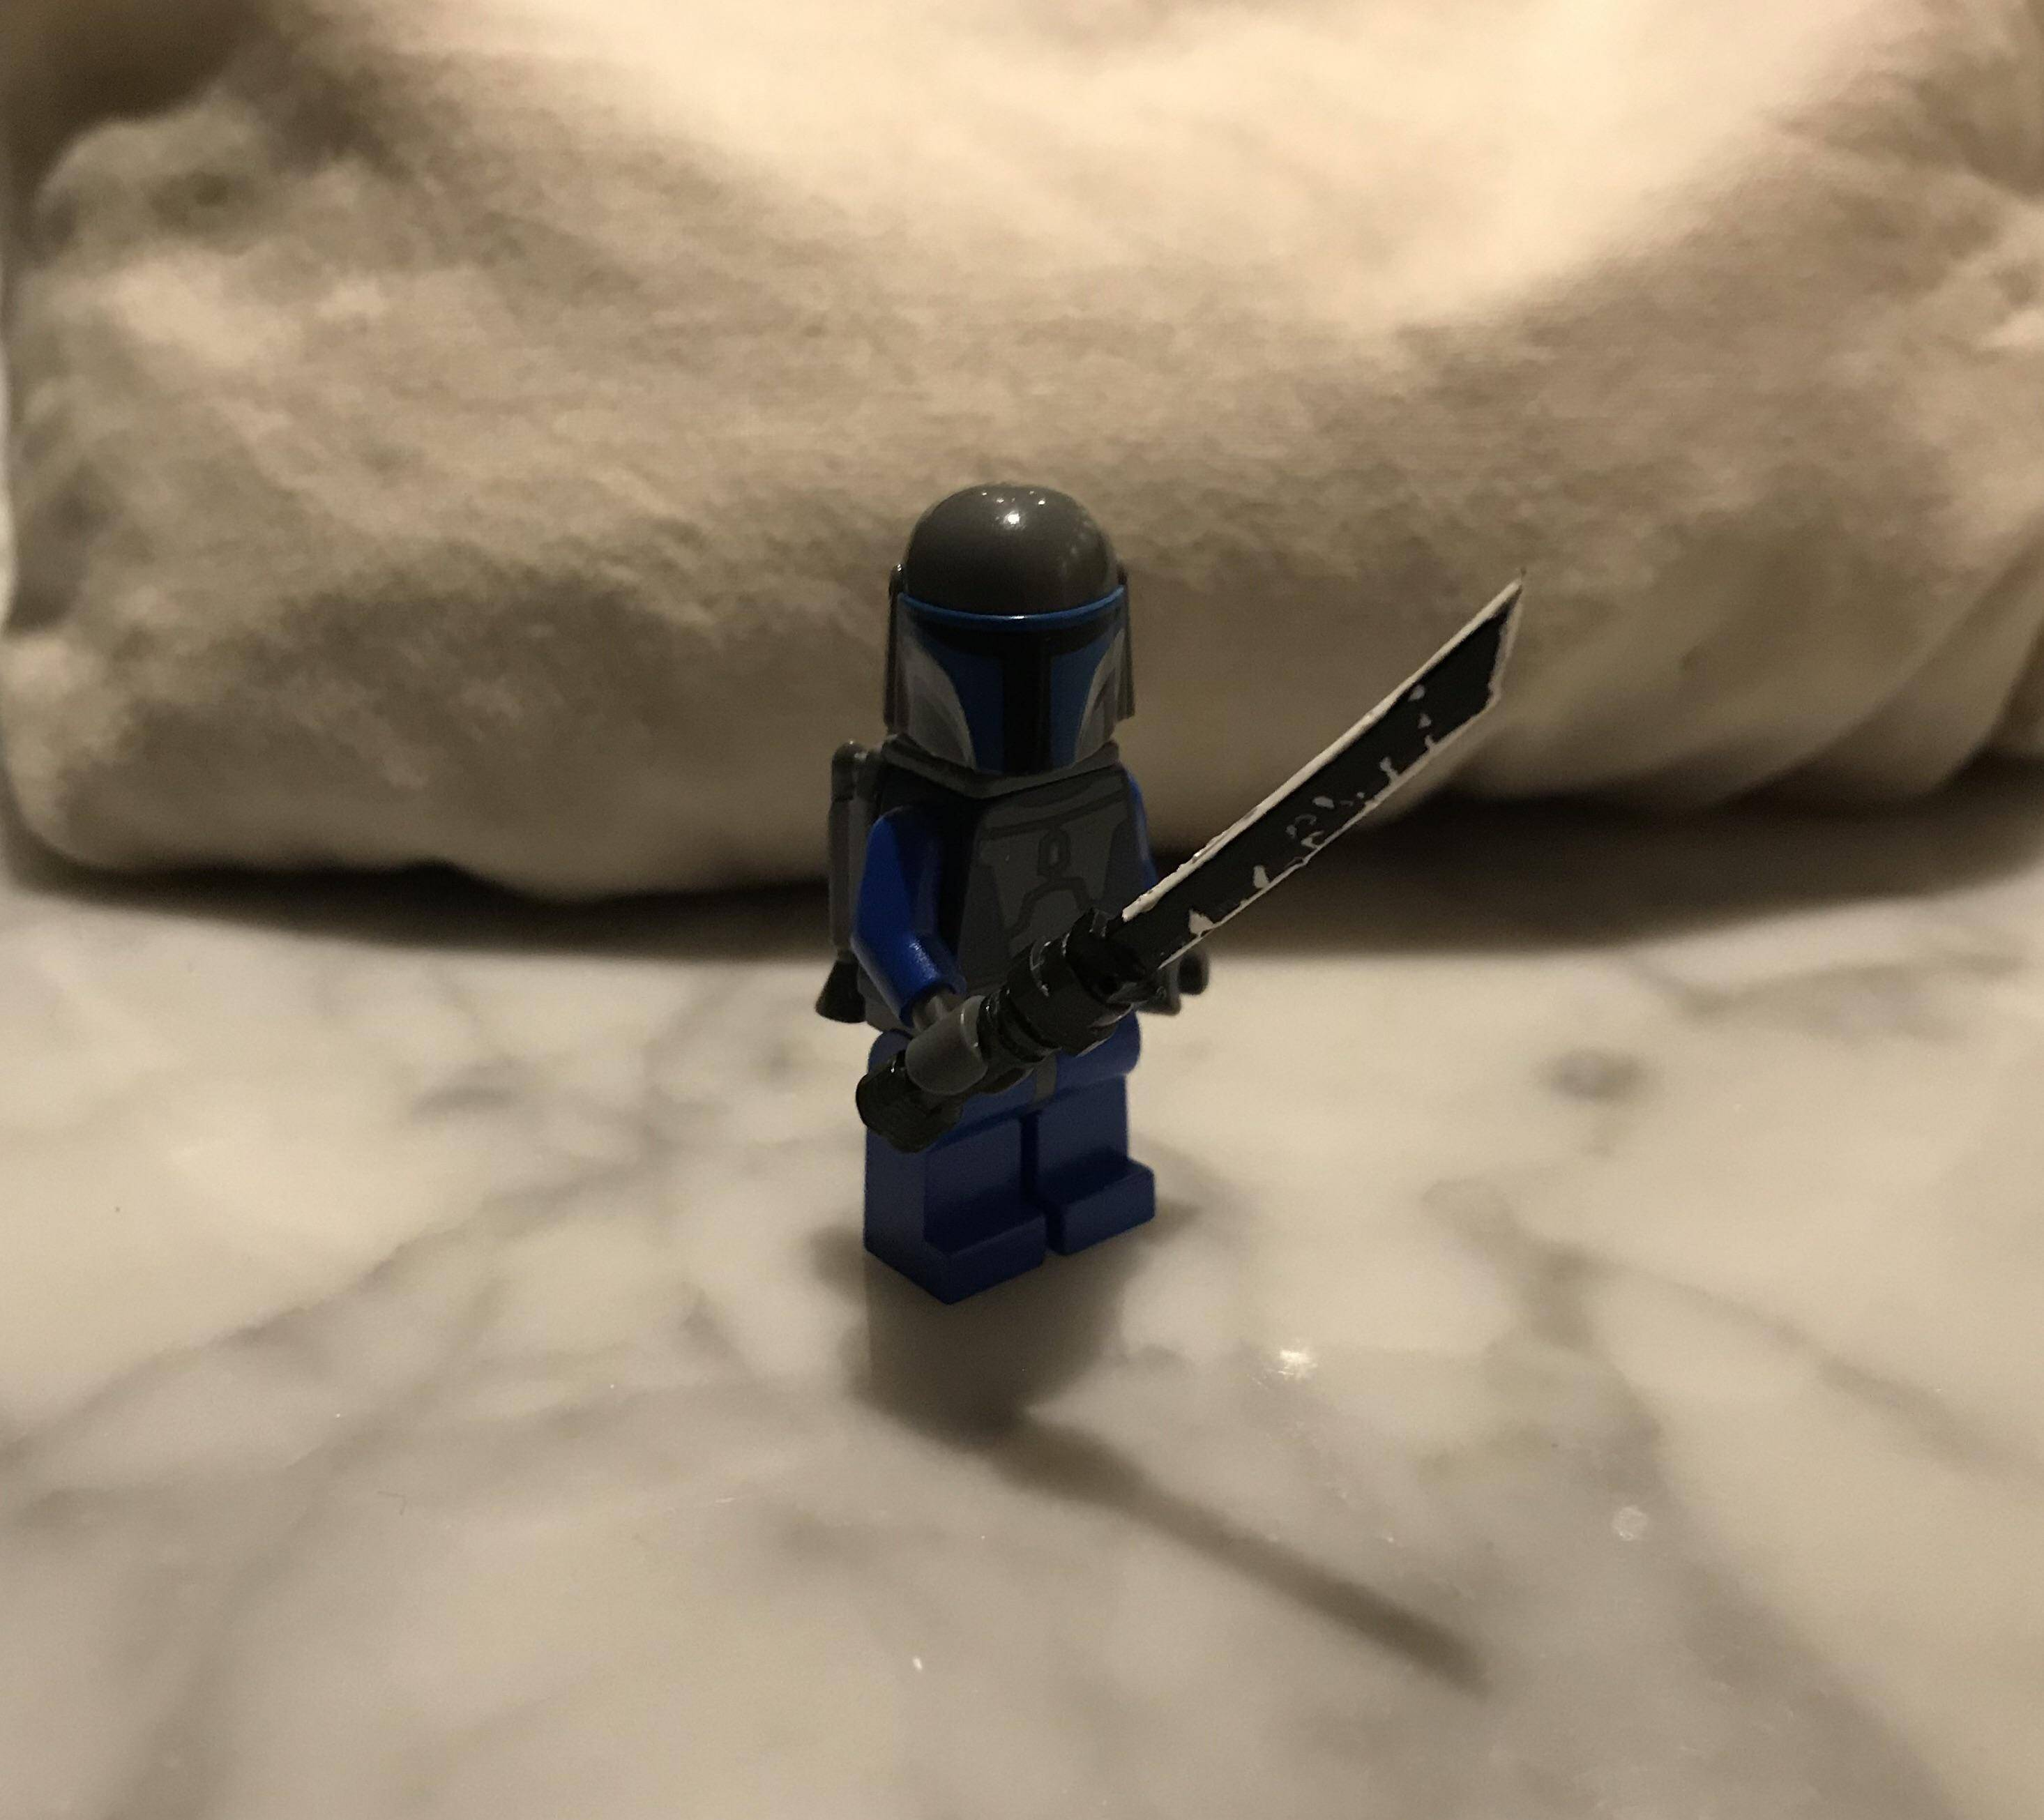 LOT of 4 LEGO Lightsaber with Hilt Glow in the Dark Star Wars Minifigure Weapons